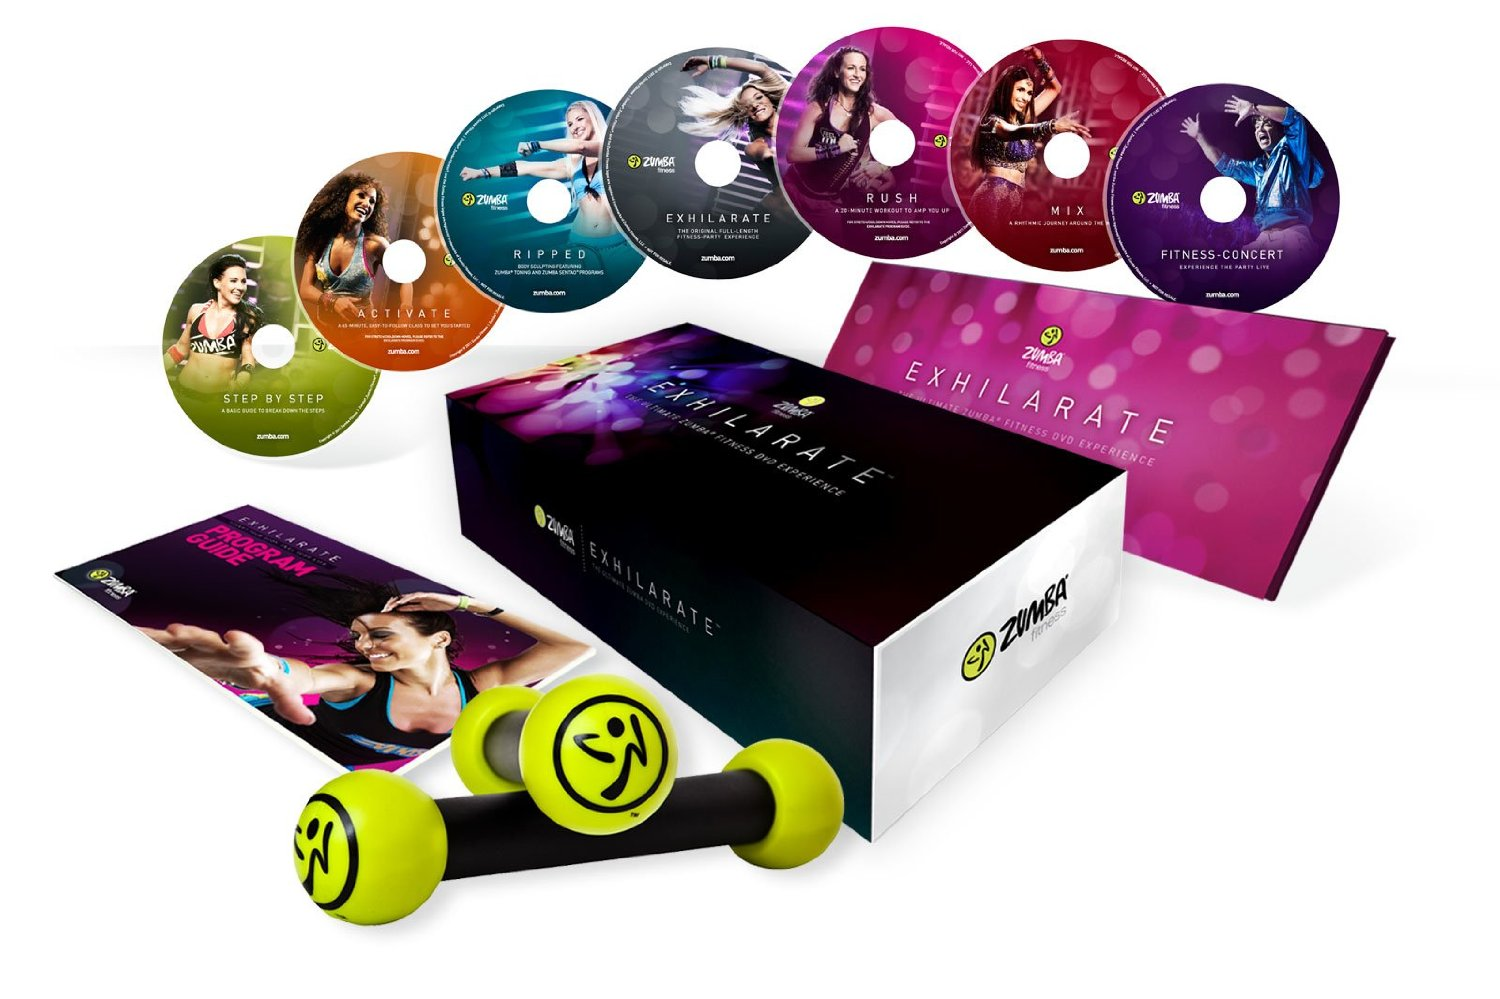 zumba exhilarate body shaping system dvd set dr john la puma. Black Bedroom Furniture Sets. Home Design Ideas